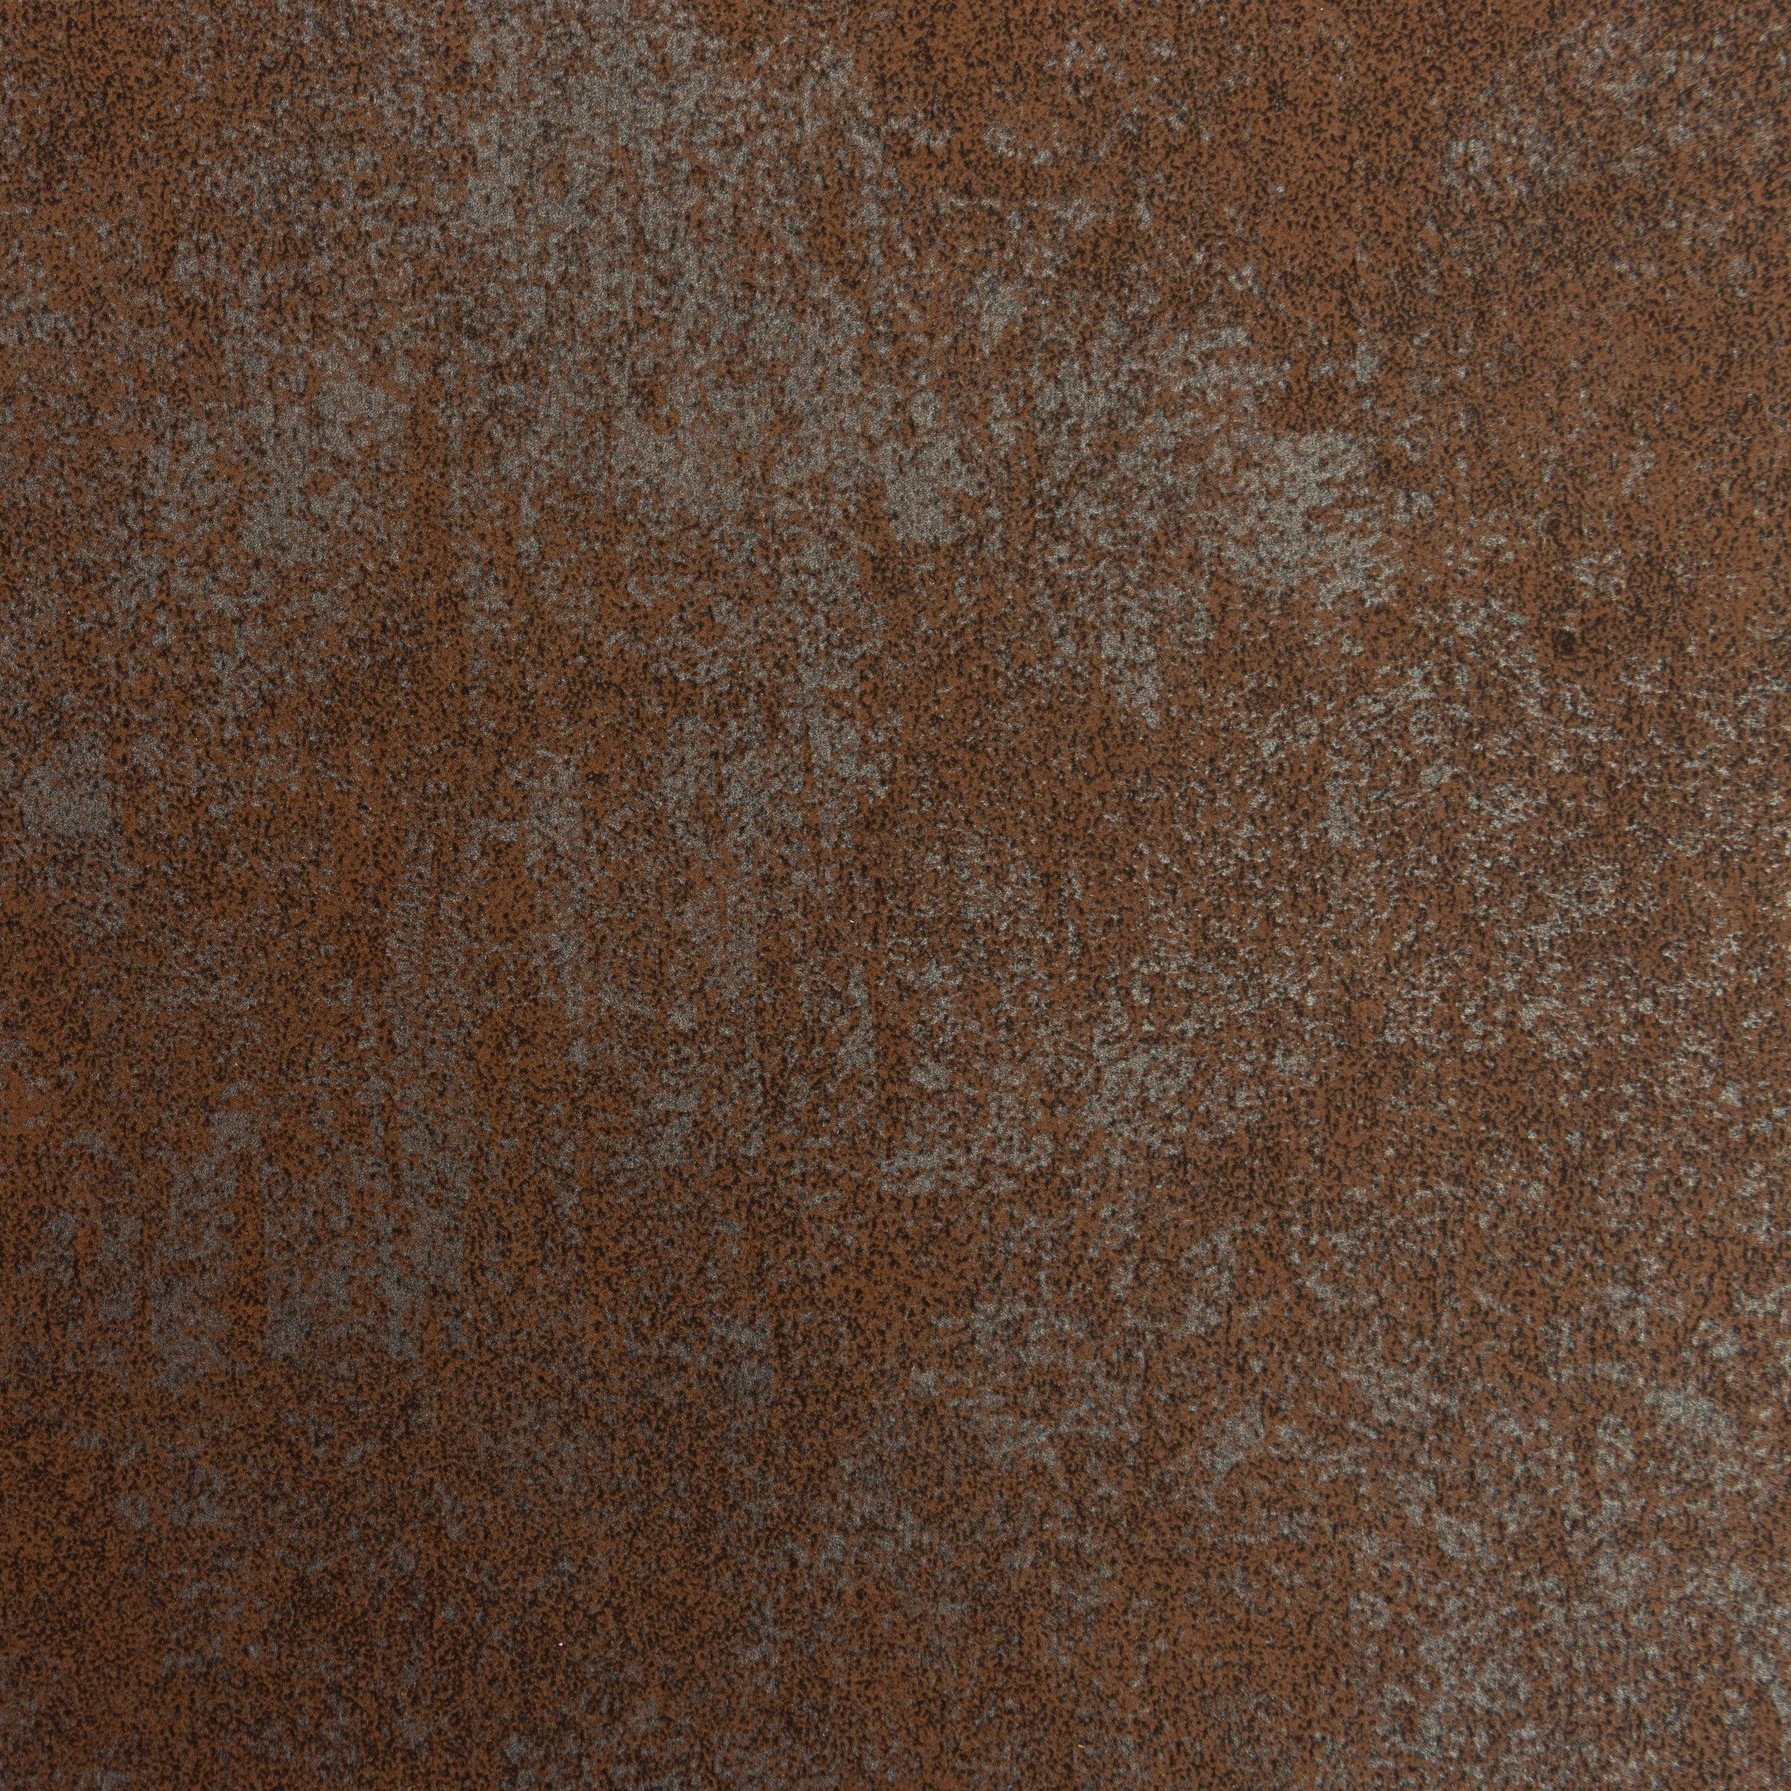 UniCote Lux Stramit Weathered Iron Swatch